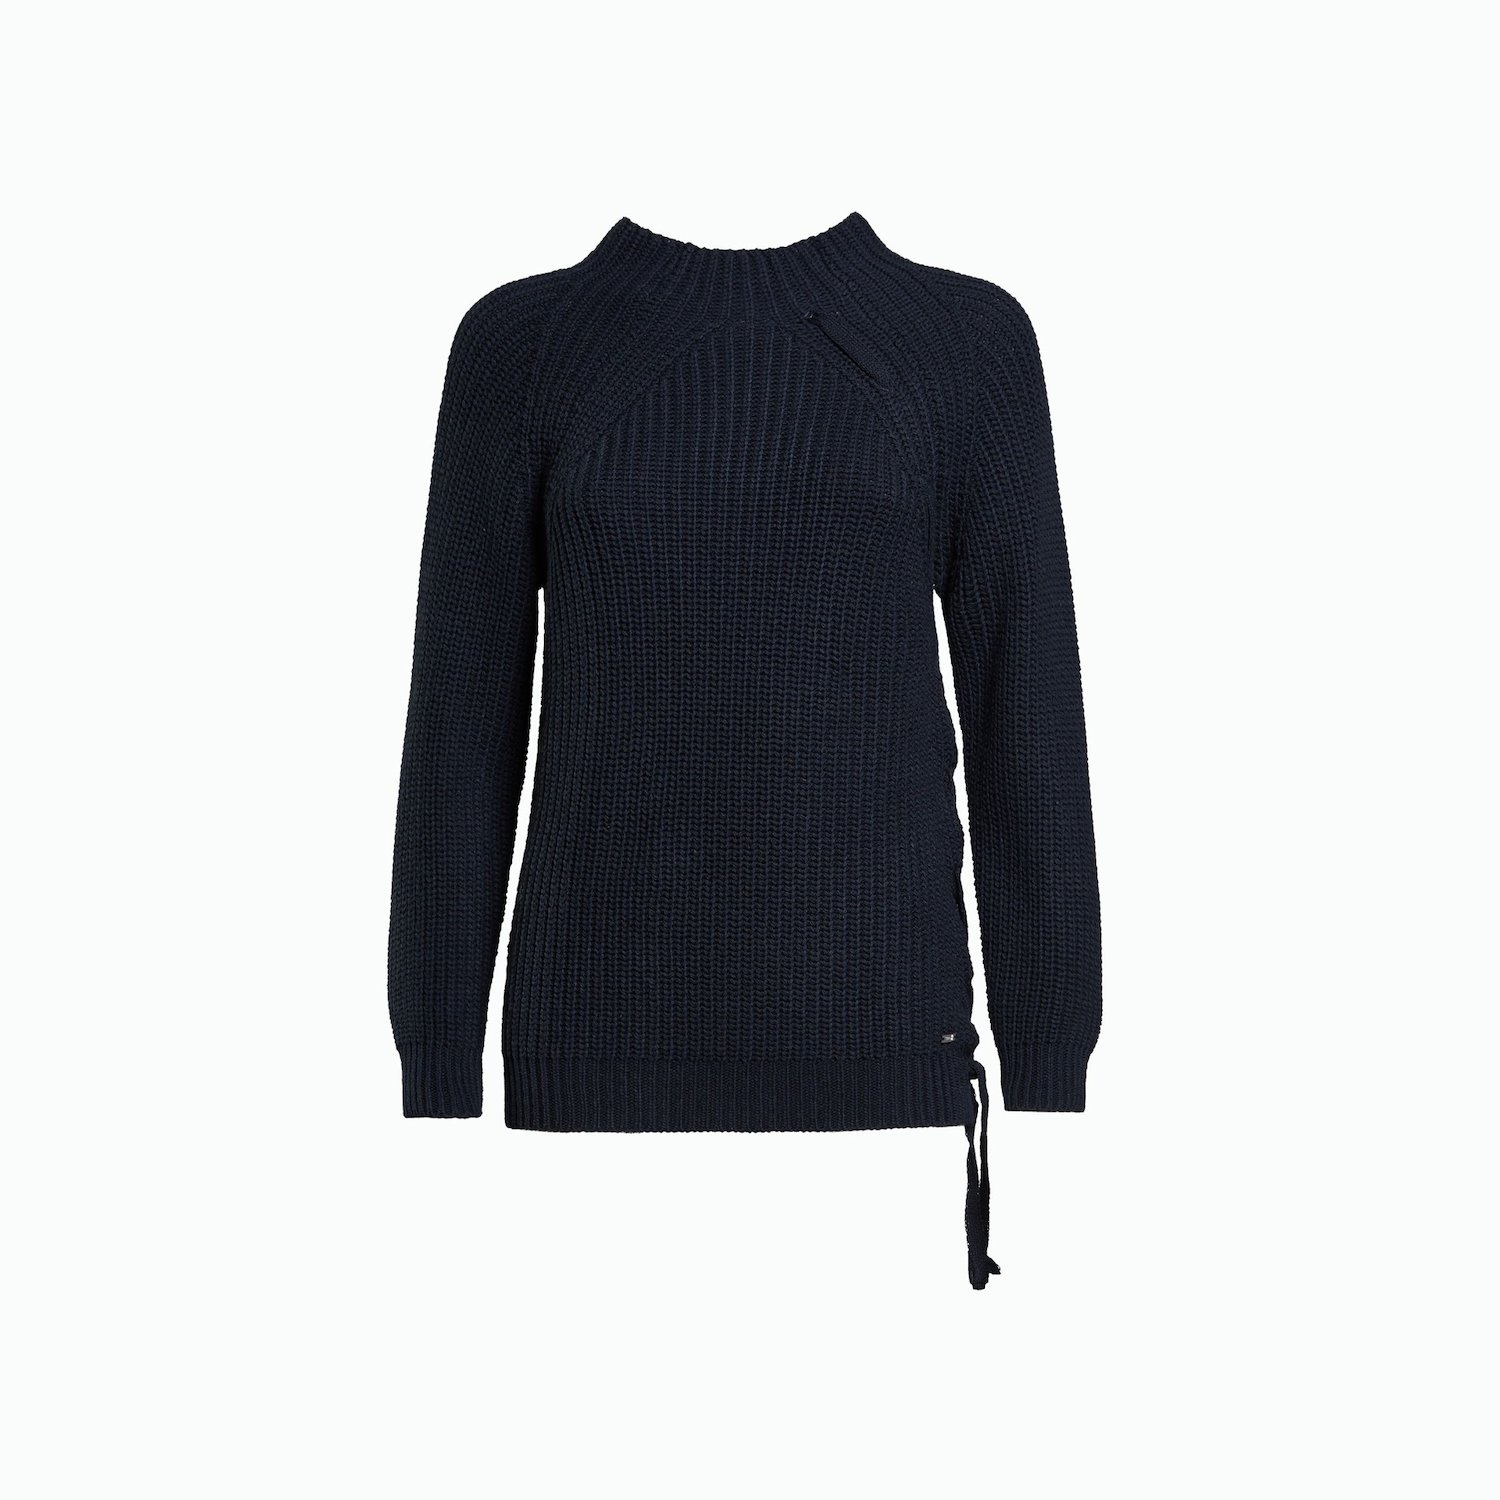 Jumper A161 - Marinenblau